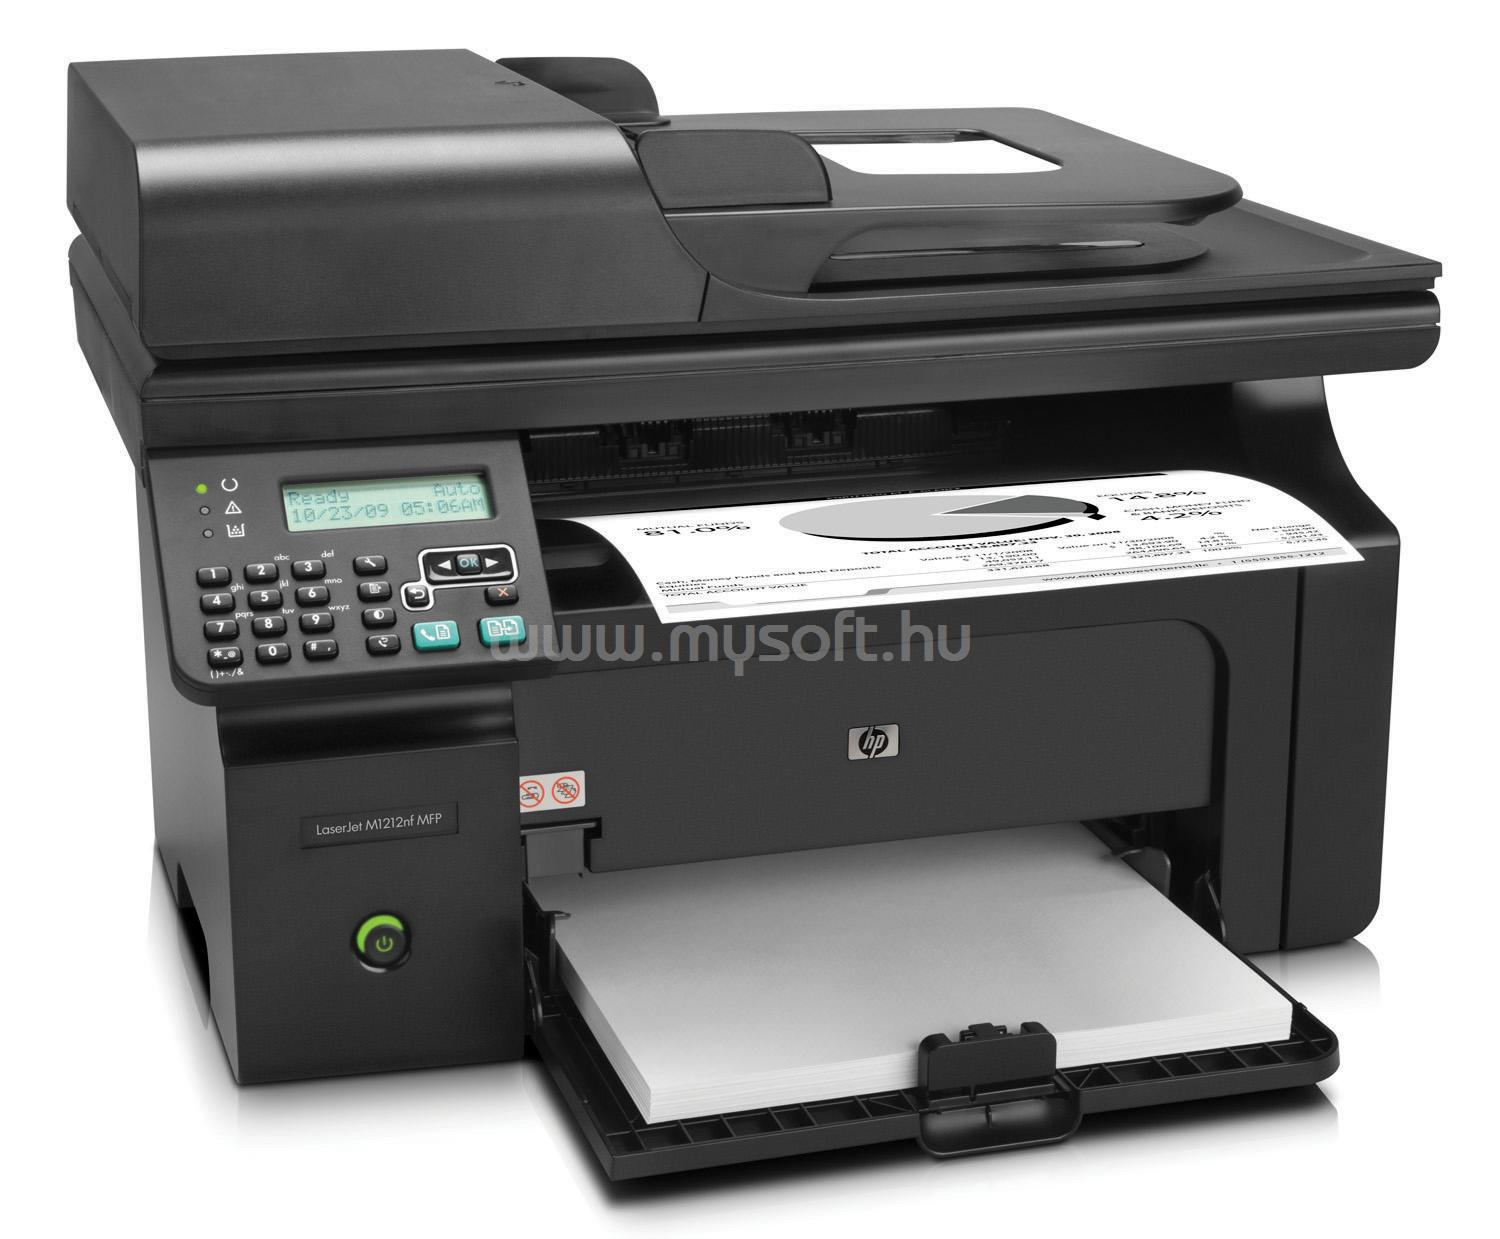 Hp Laserjet M1212nf Mfp Windows 10 Driver